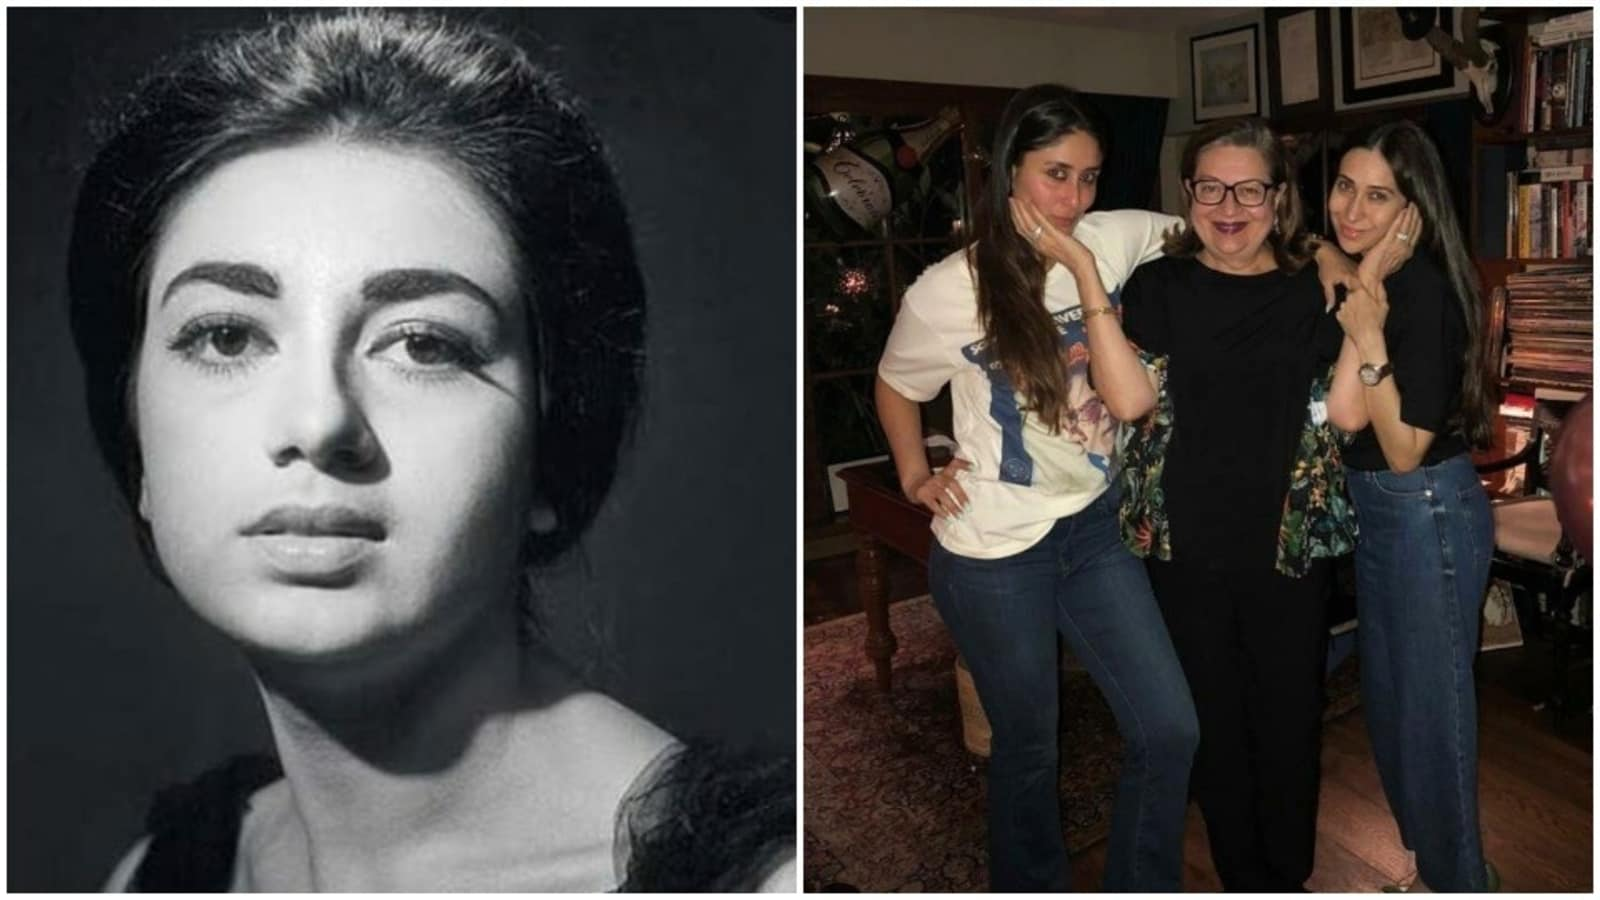 Kareena Kapoor shares old photos on Babita's mother's birthday: 'Lolo and I will worry you forever'